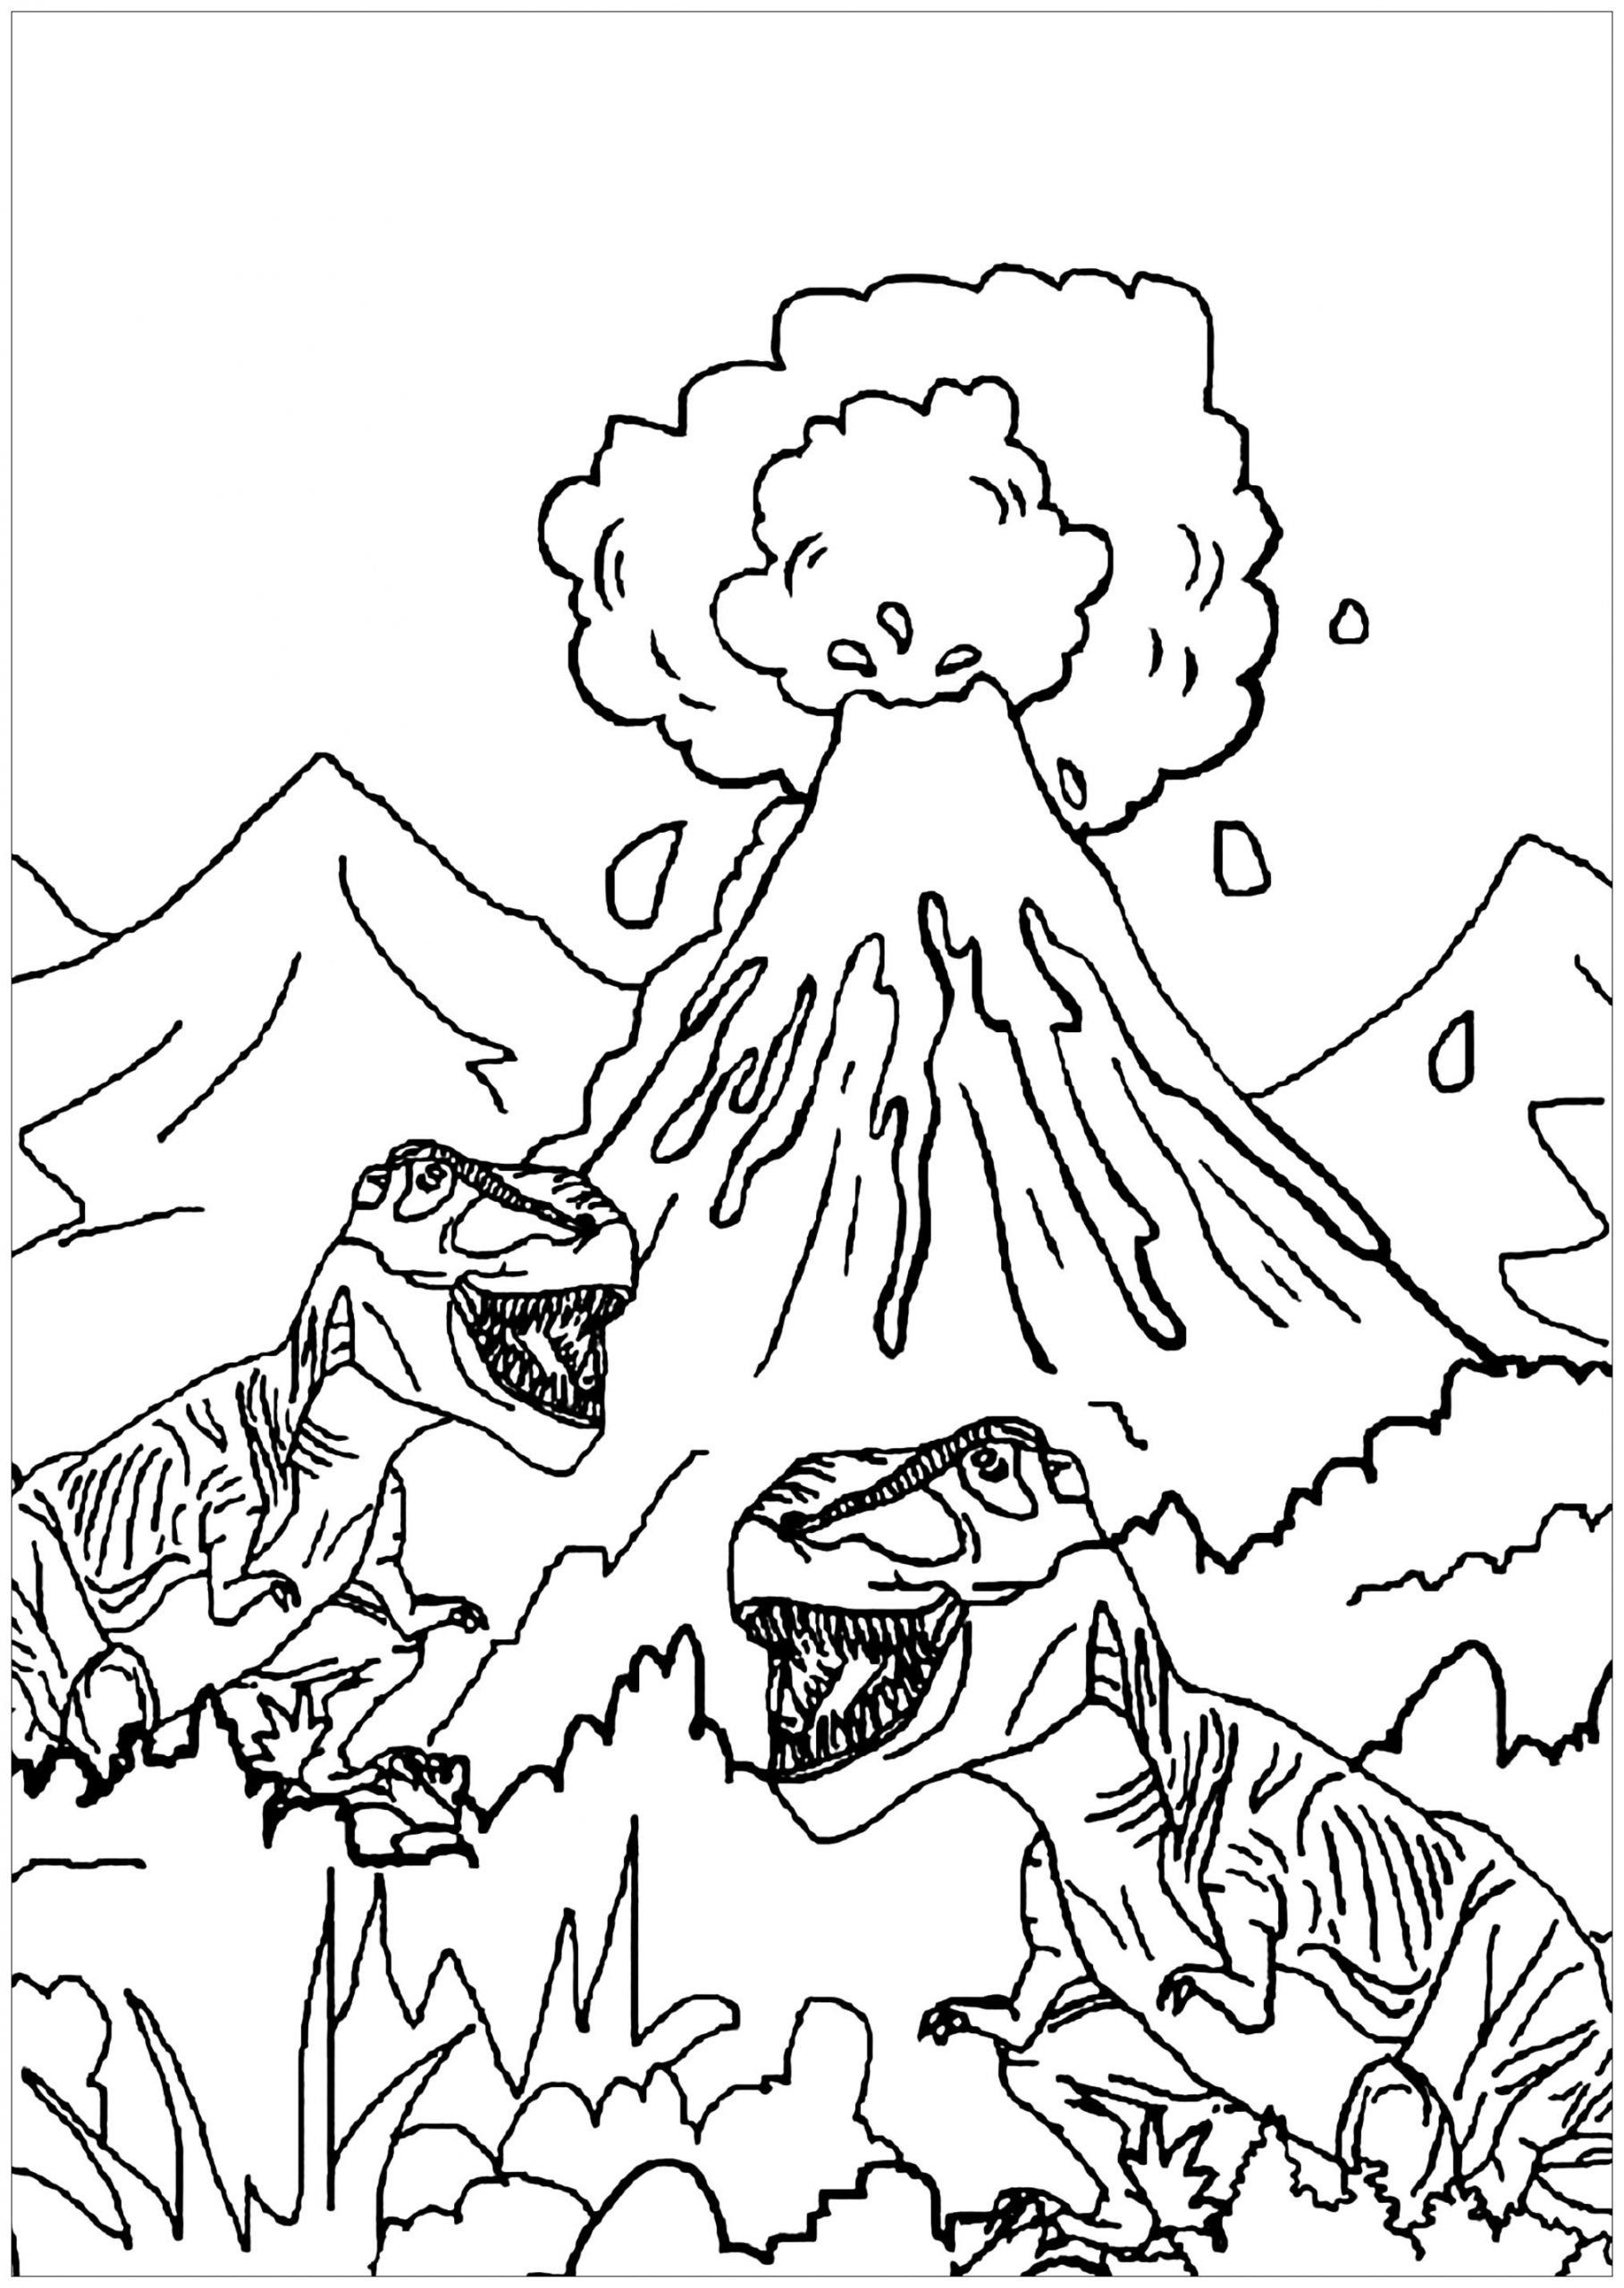 Coloring Pages For Kids Dinosaurs Dinosaurs To Print For Free Dinosaurs And Volcano Dinosaur Coloring Pages Dinosaur Coloring Cartoon Coloring Pages